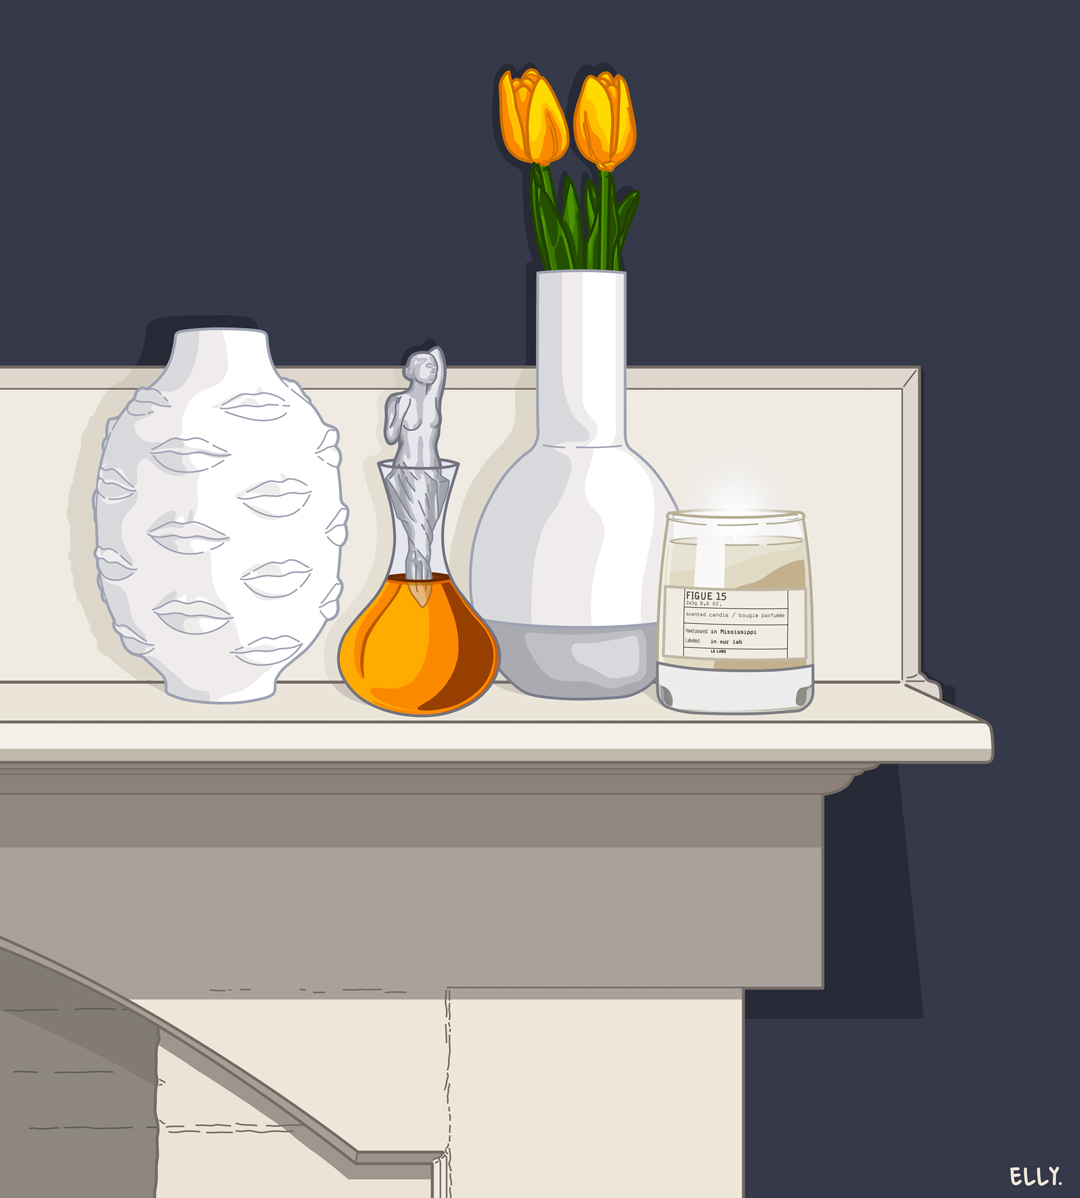 Featuring a  Jonathan Adler  vase, a decanter by  Lalique , and a  Le Labo  candle